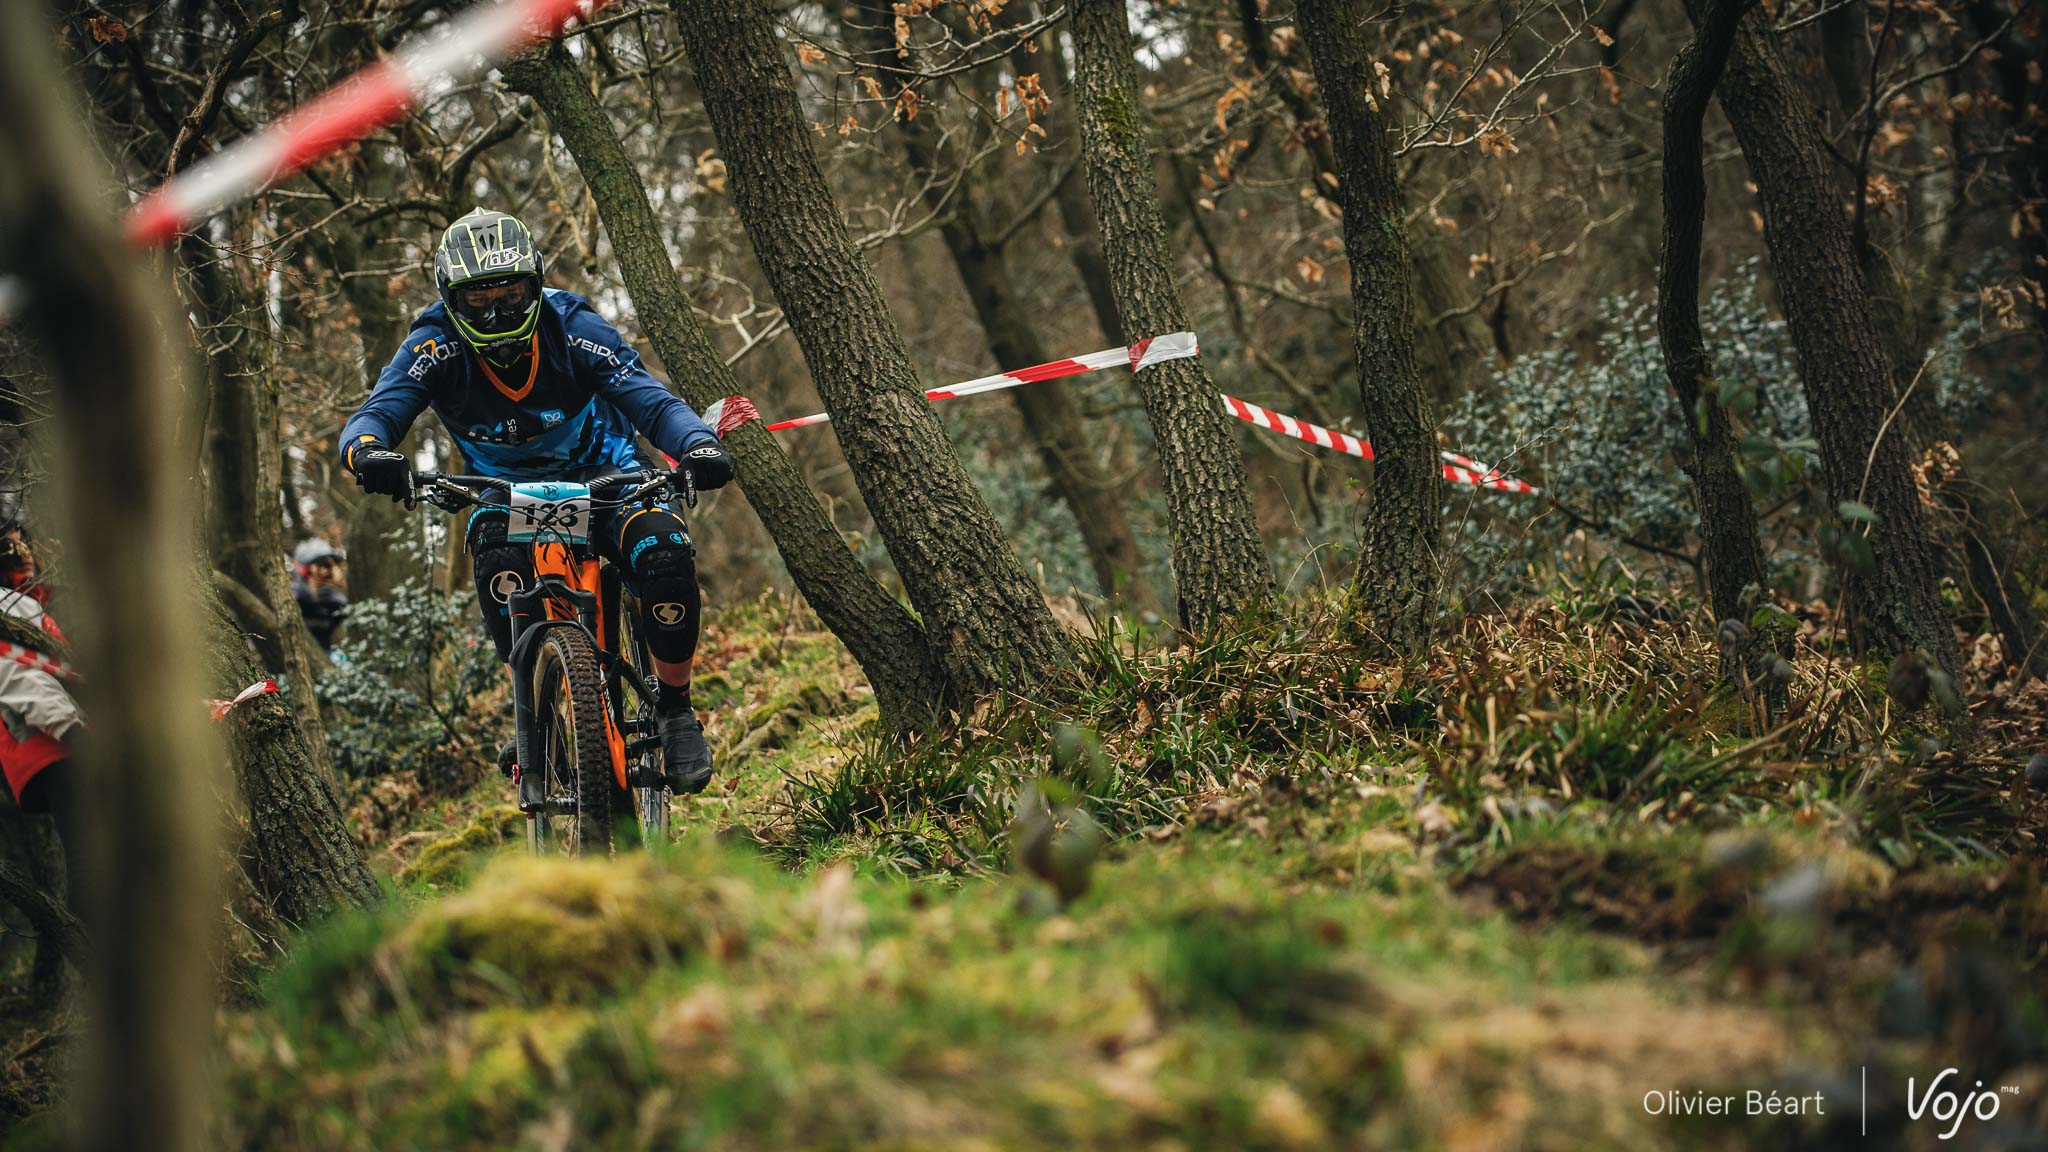 Belgian_Enduro_Cup_Chaudfontaine_2016_Copyright_OBeart_Vojomag-21